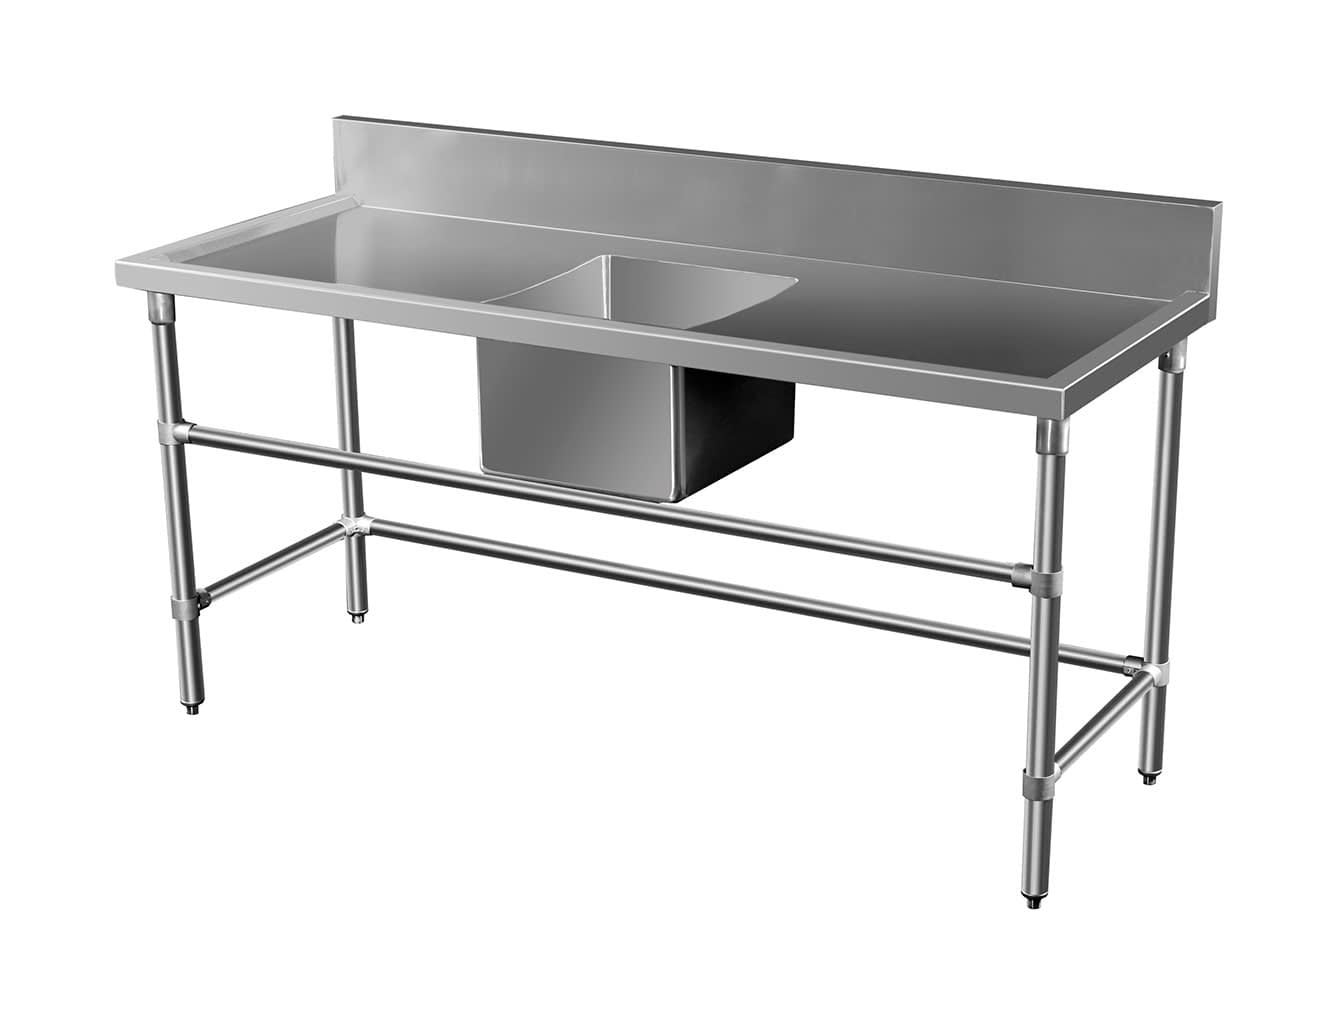 Stainless Steel Catering Sink – Right And Left Bench, 1500 x 700 x 900mm high